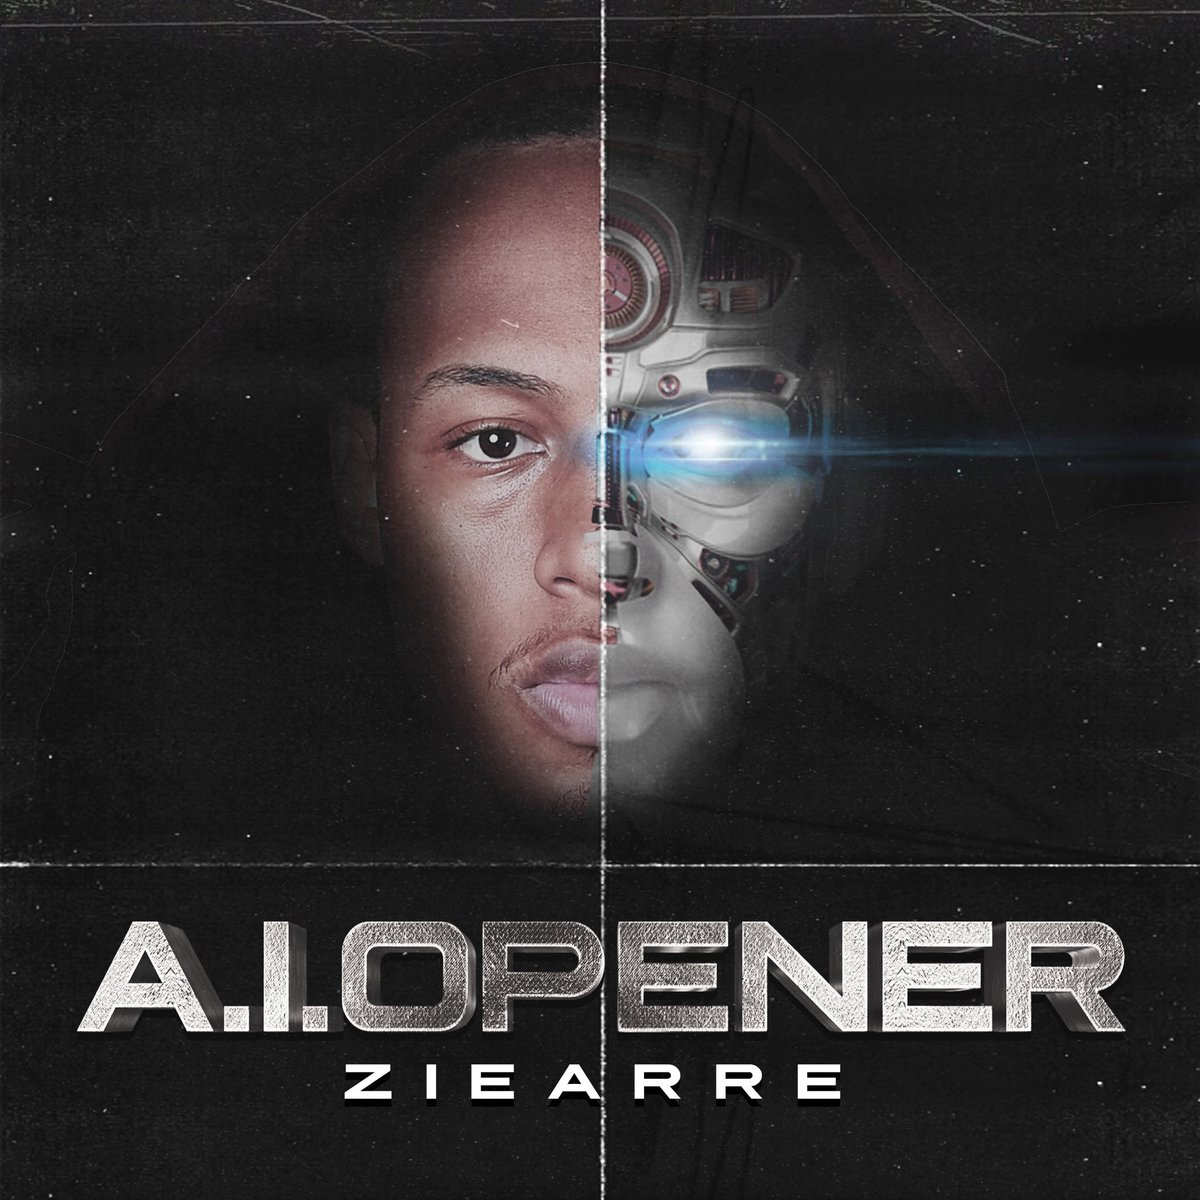 """WE ARE LIVING IN A NEW WORLD WHERE WE ADAPT TO OUR DEVICES MORE THAN OUR ENVIRONMENT! 👁""""A.I.OPENER"""" DROPPING THIS FRIDAY NOVEMBER 22ND💫#rap #newmusic #hiphopmusic #chh #pop #goodmusic #soul #soulmusic  #realhiphop #song #rapmusic  #smooth #AIOPENER #Ziearre #artist #musician"""